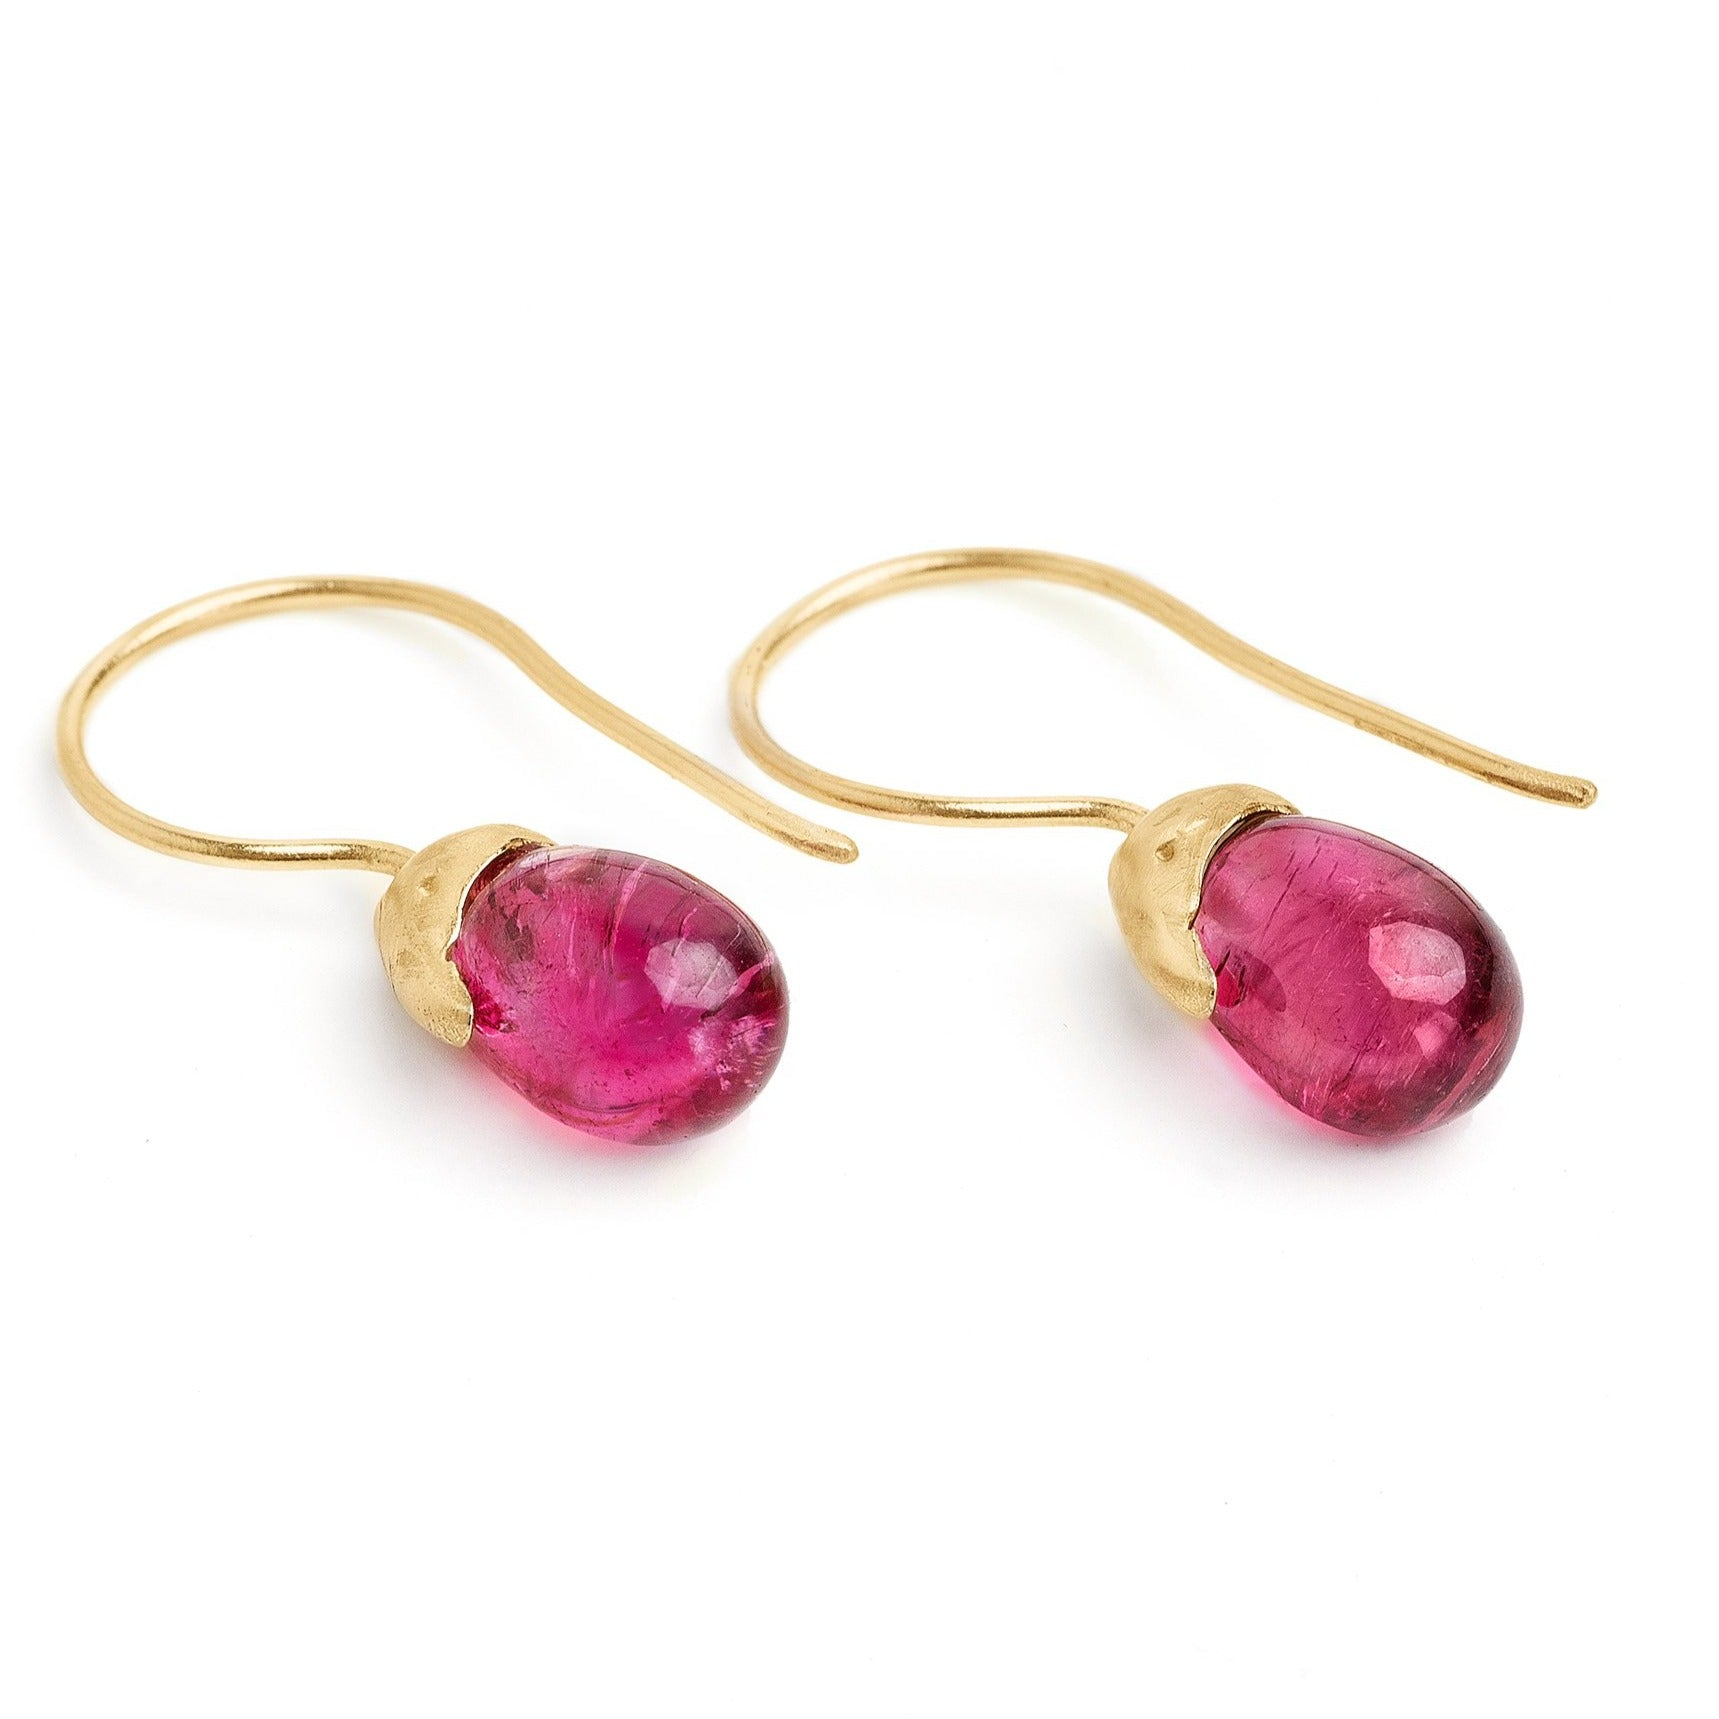 rubellite  tourmaline gemstone drops 14kt gold handmade organic drop earrings